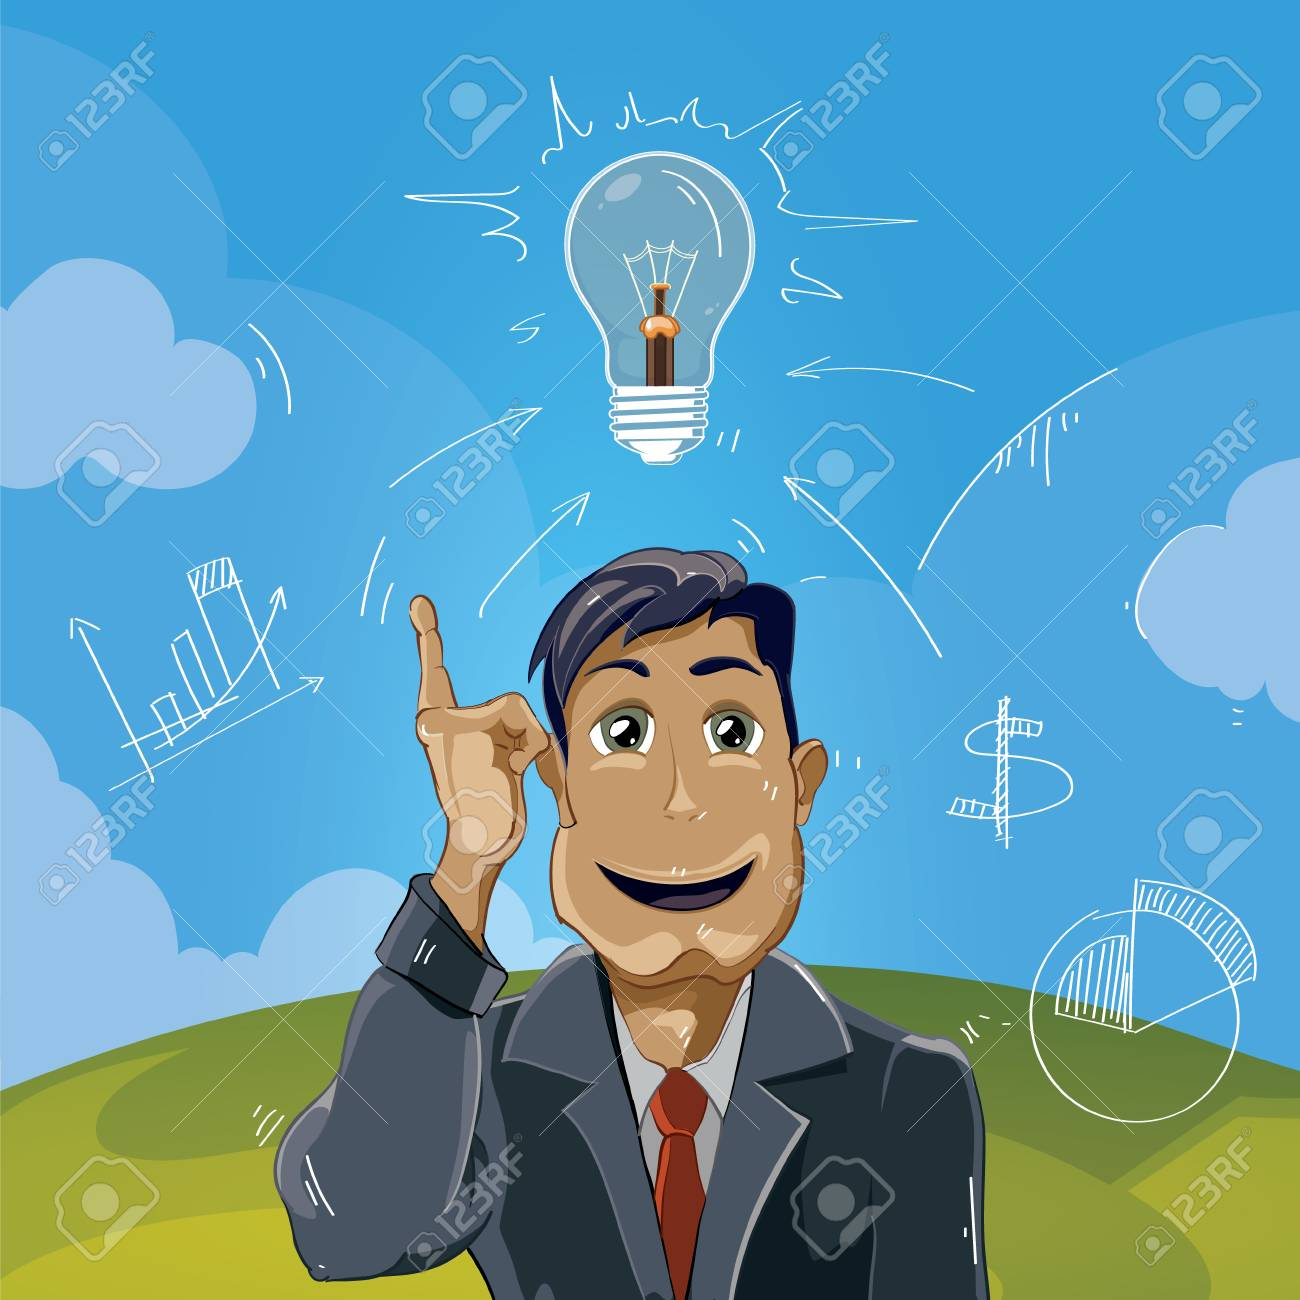 the idea came. Businessman pointing top. Concept picture - 51439322